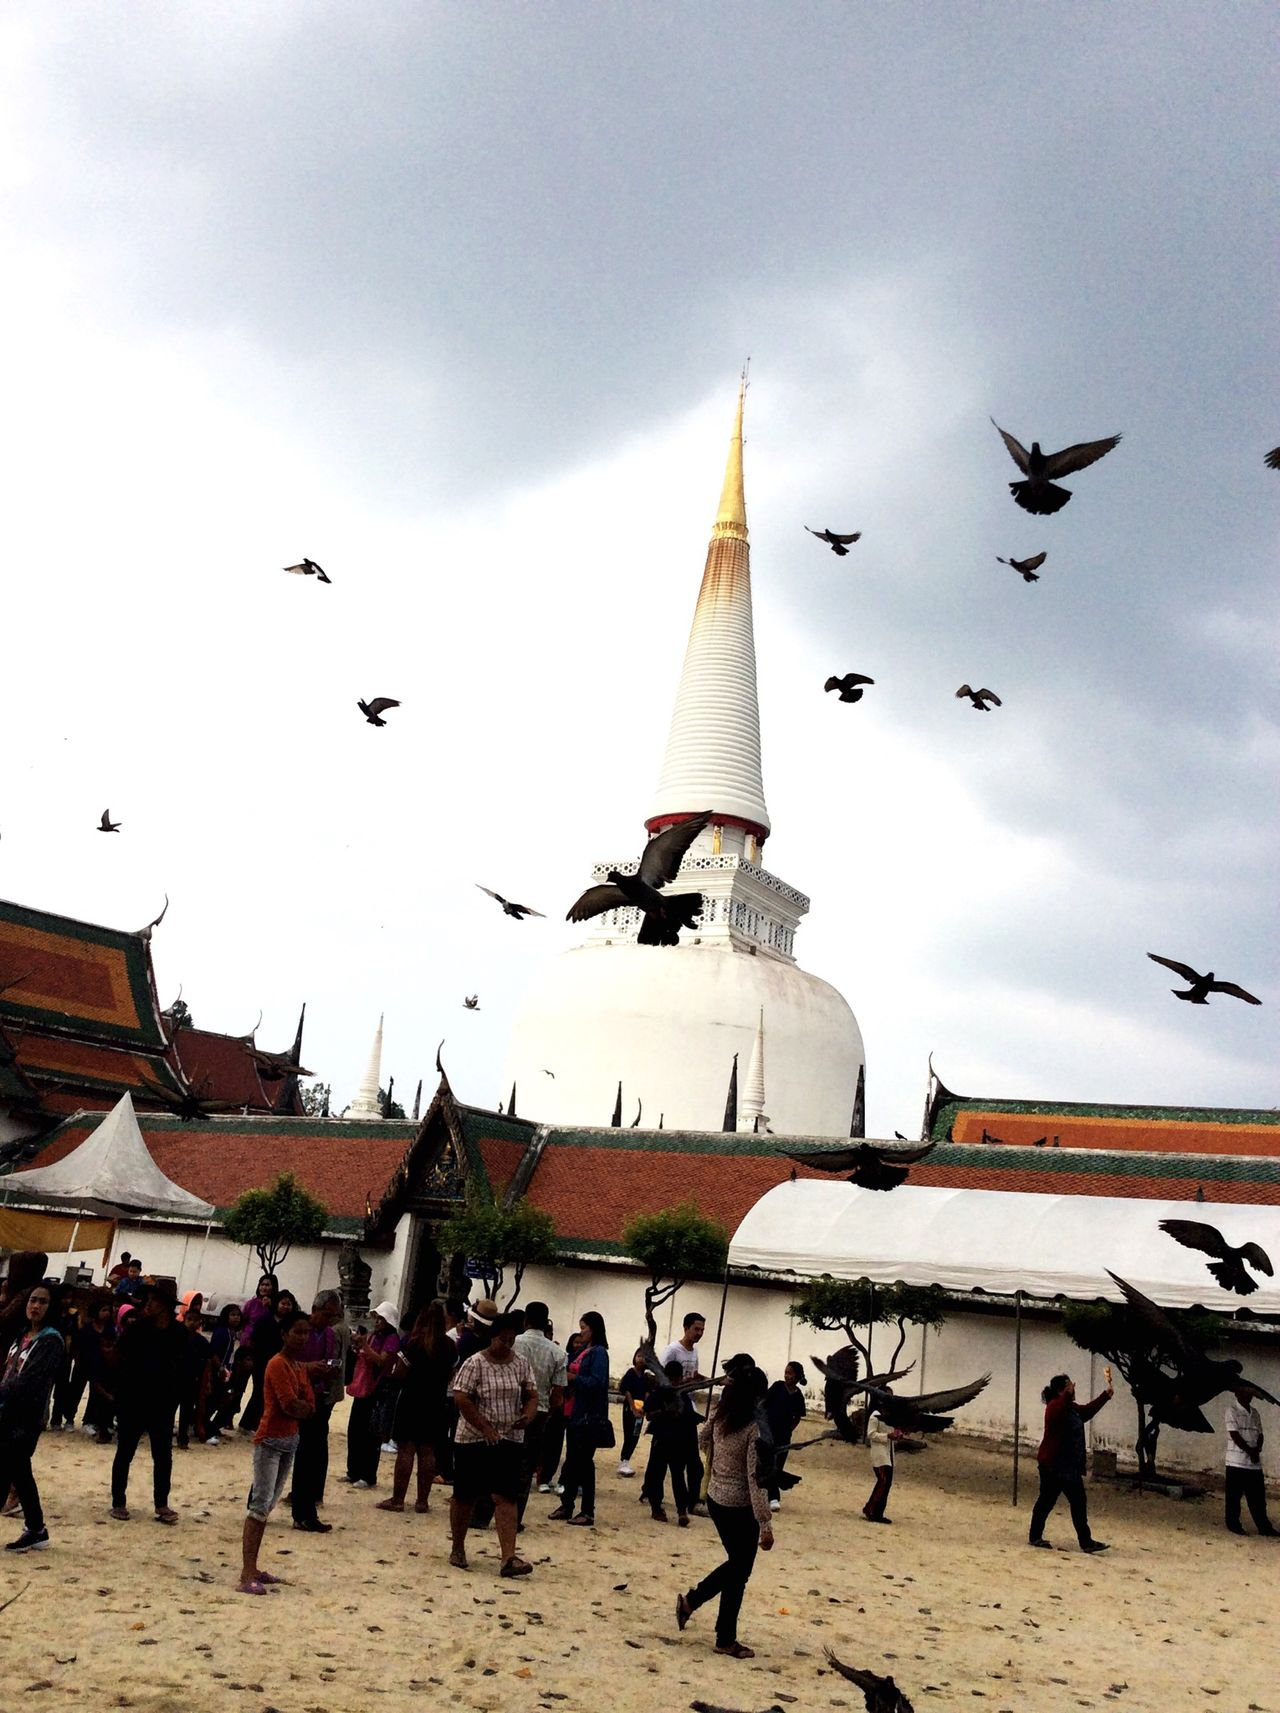 Nakhon Si Thammarat Temple Thailand Travel Photography Travelling Vacation Time Birds Nature Sky Capturing Movement